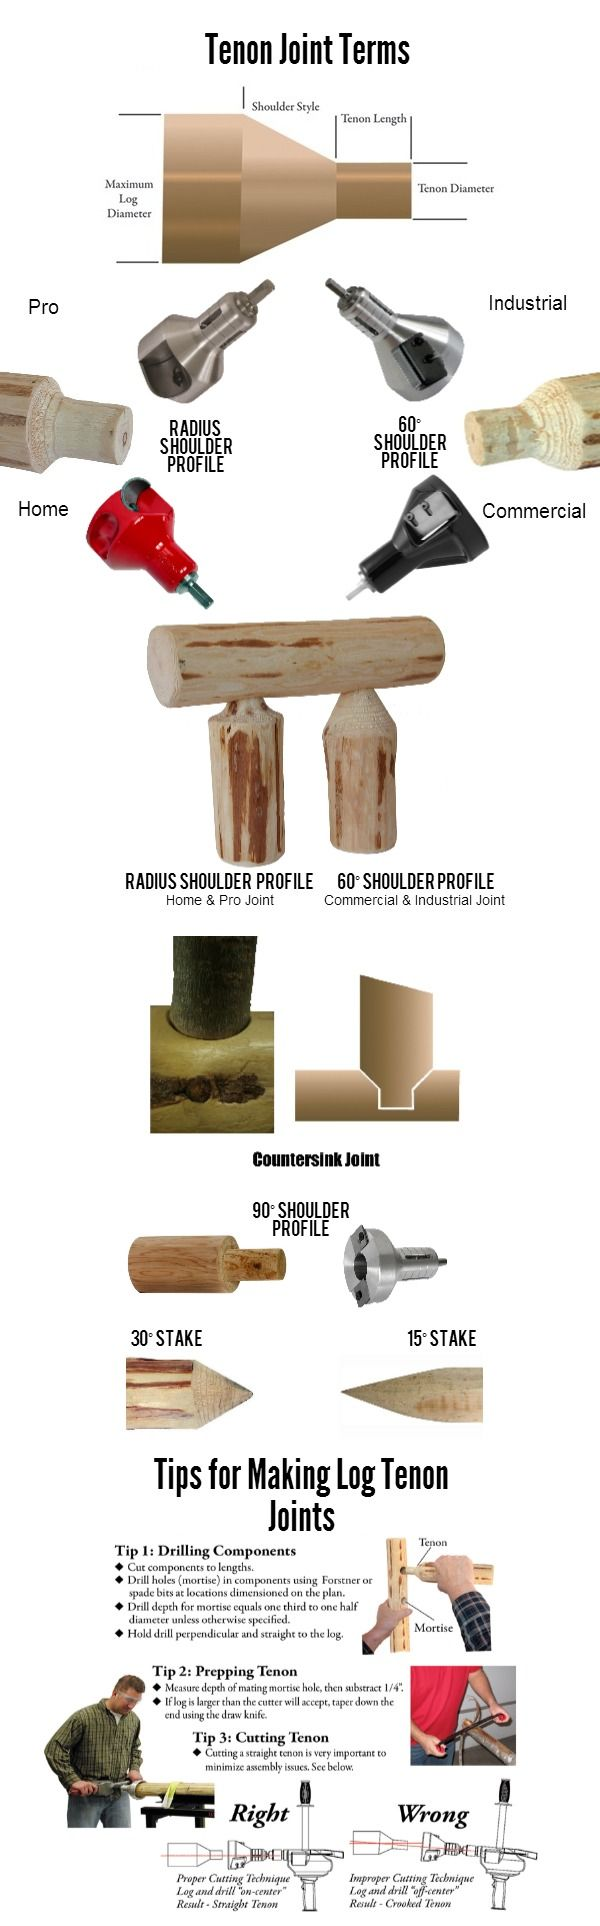 Log Tenon Jig Plans Woodworking Projects Amp Plans